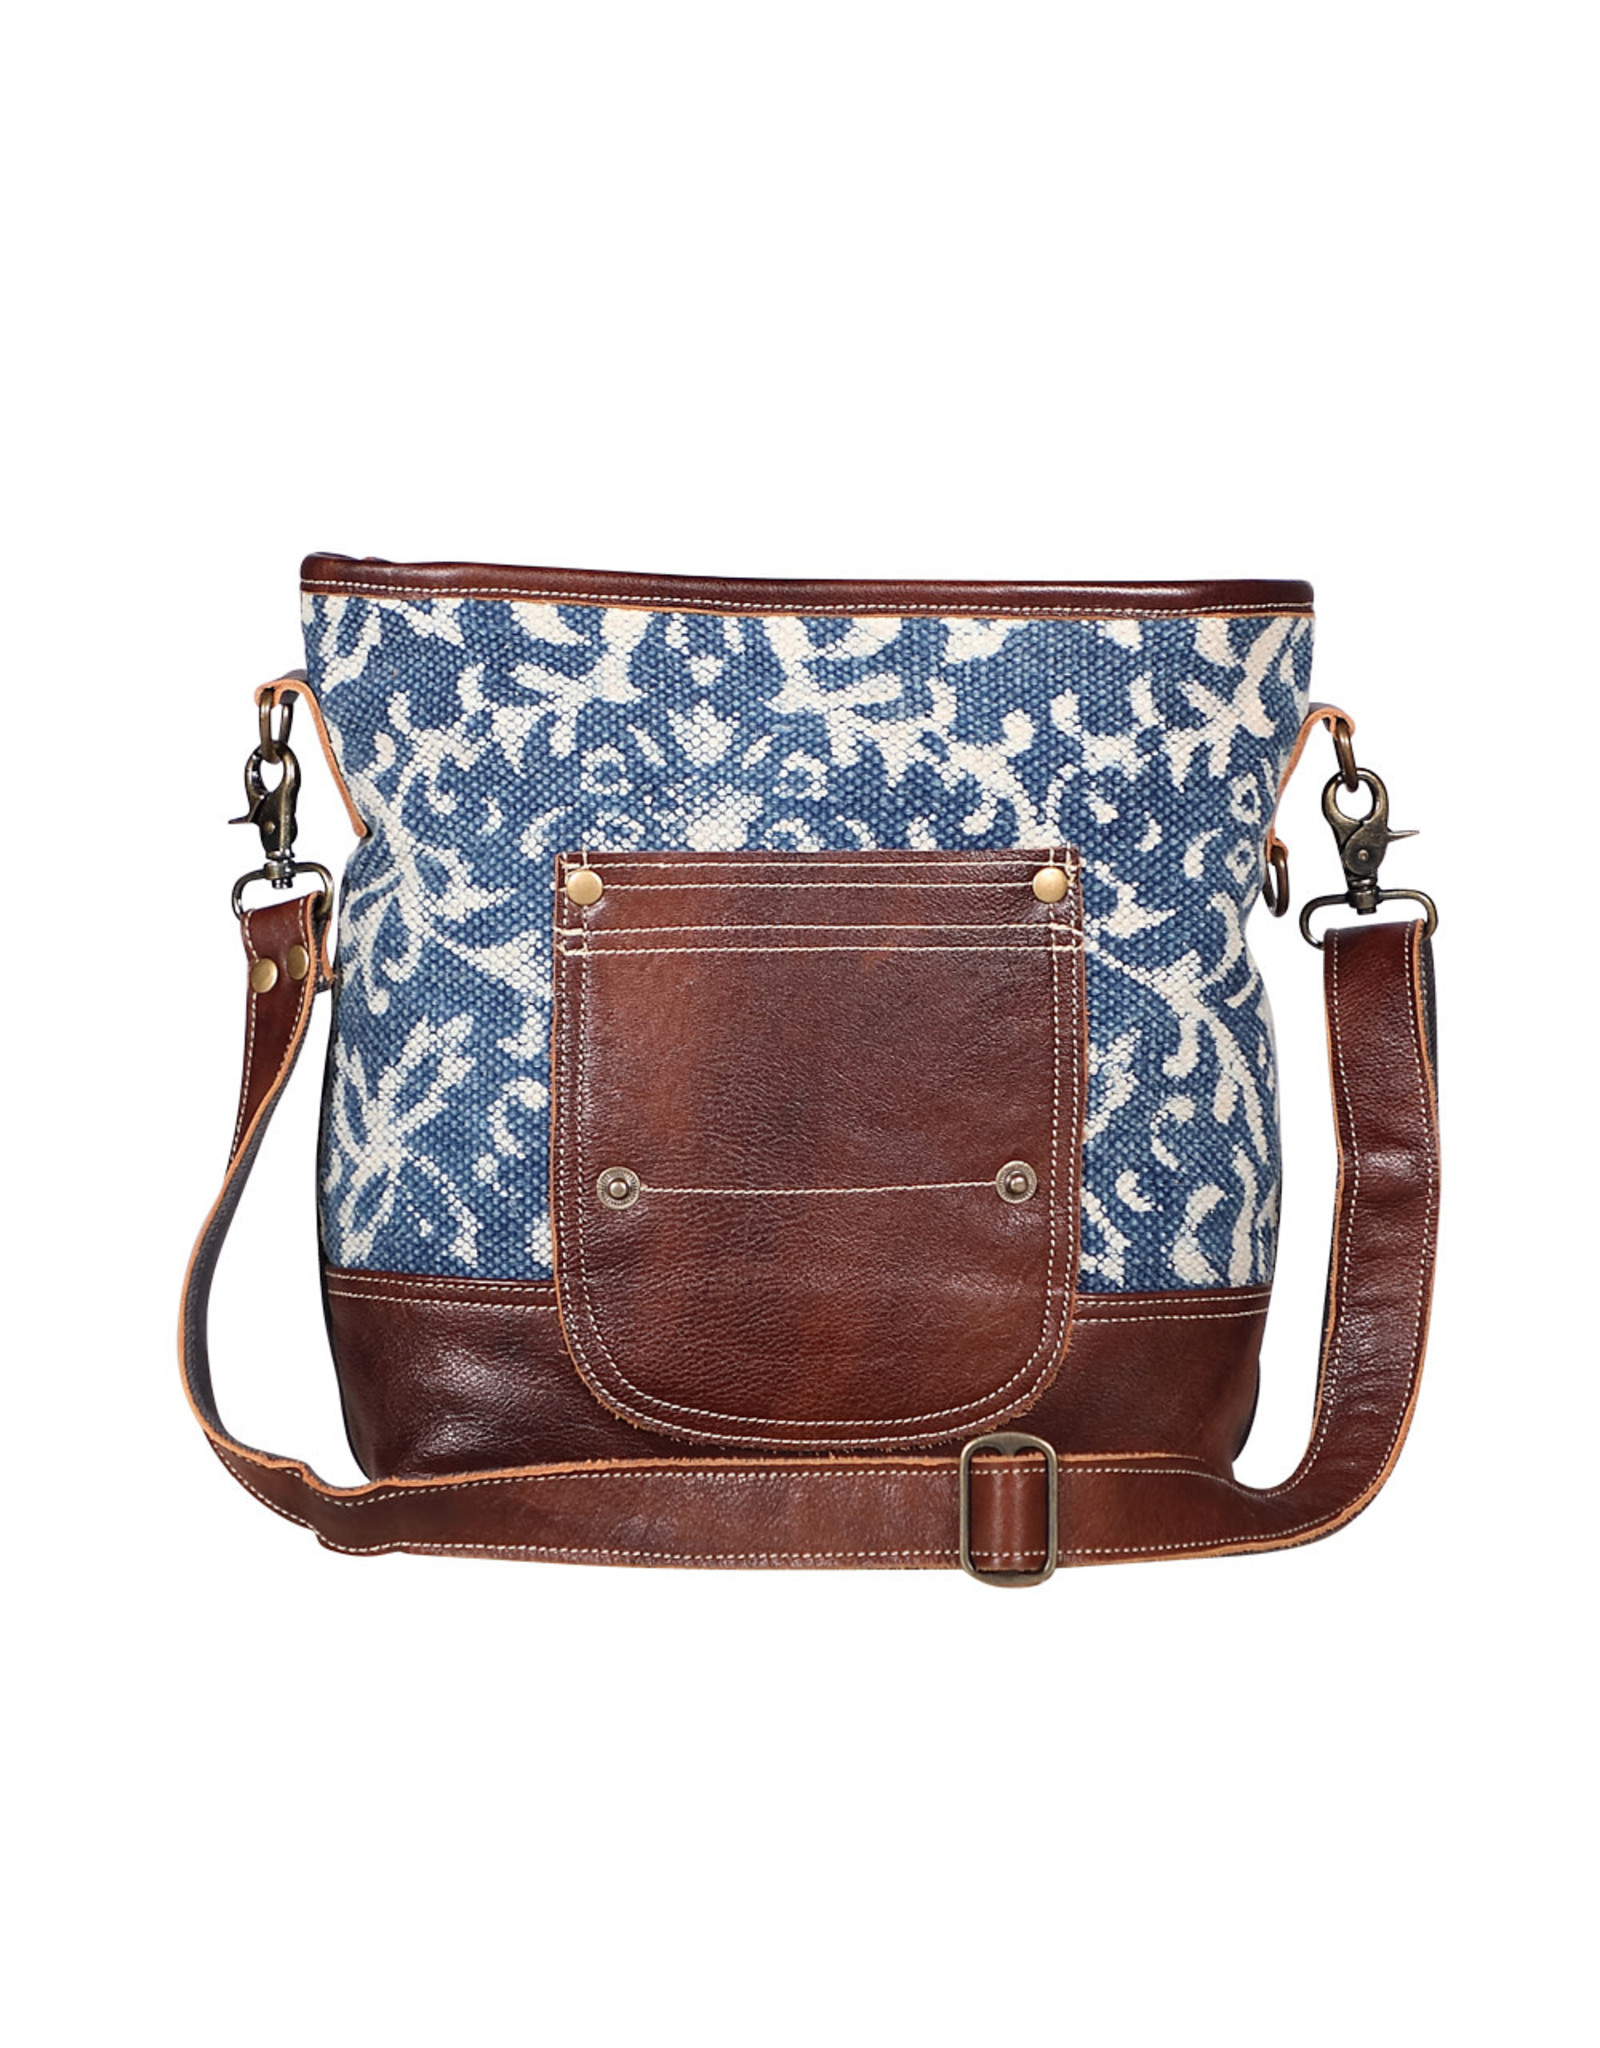 Myra Bags S-1950 Blue Bliss Shoulder Bag